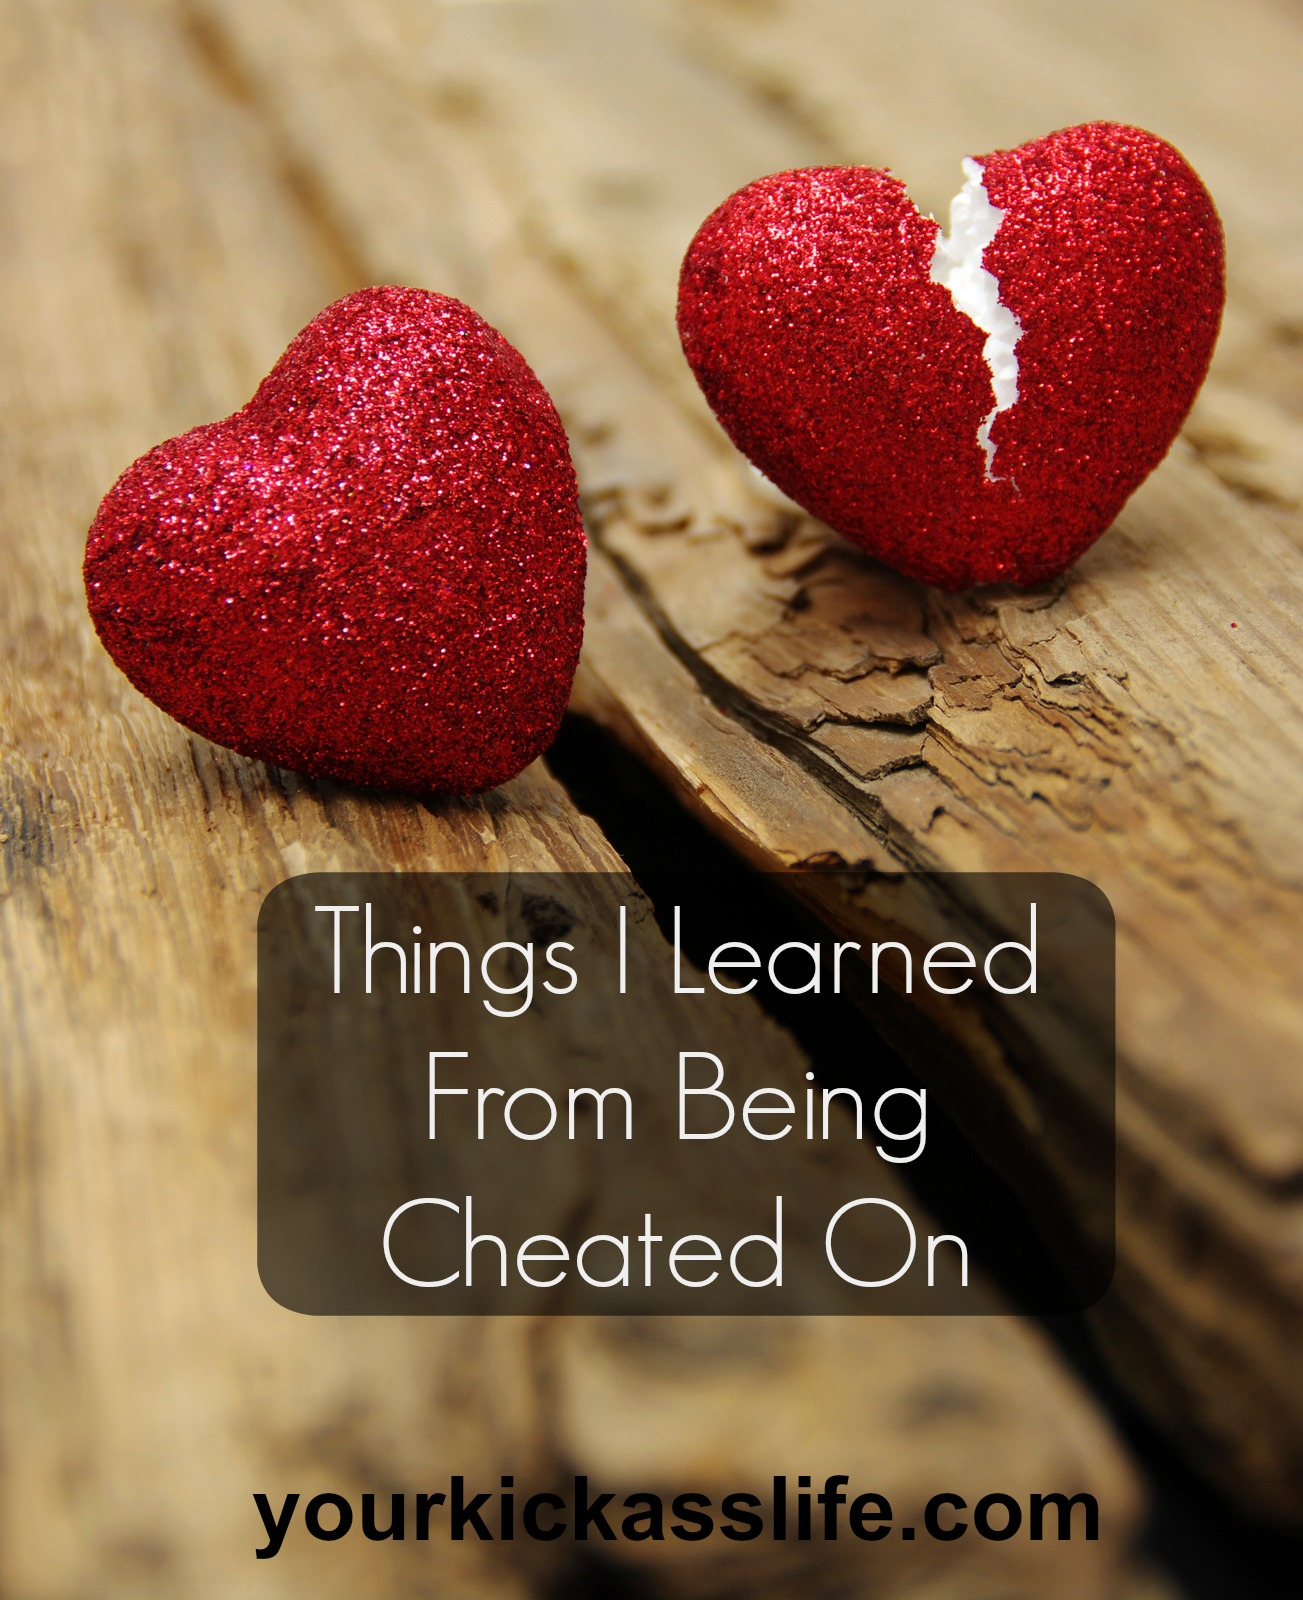 3 signs that he really regrets that he cheated on you